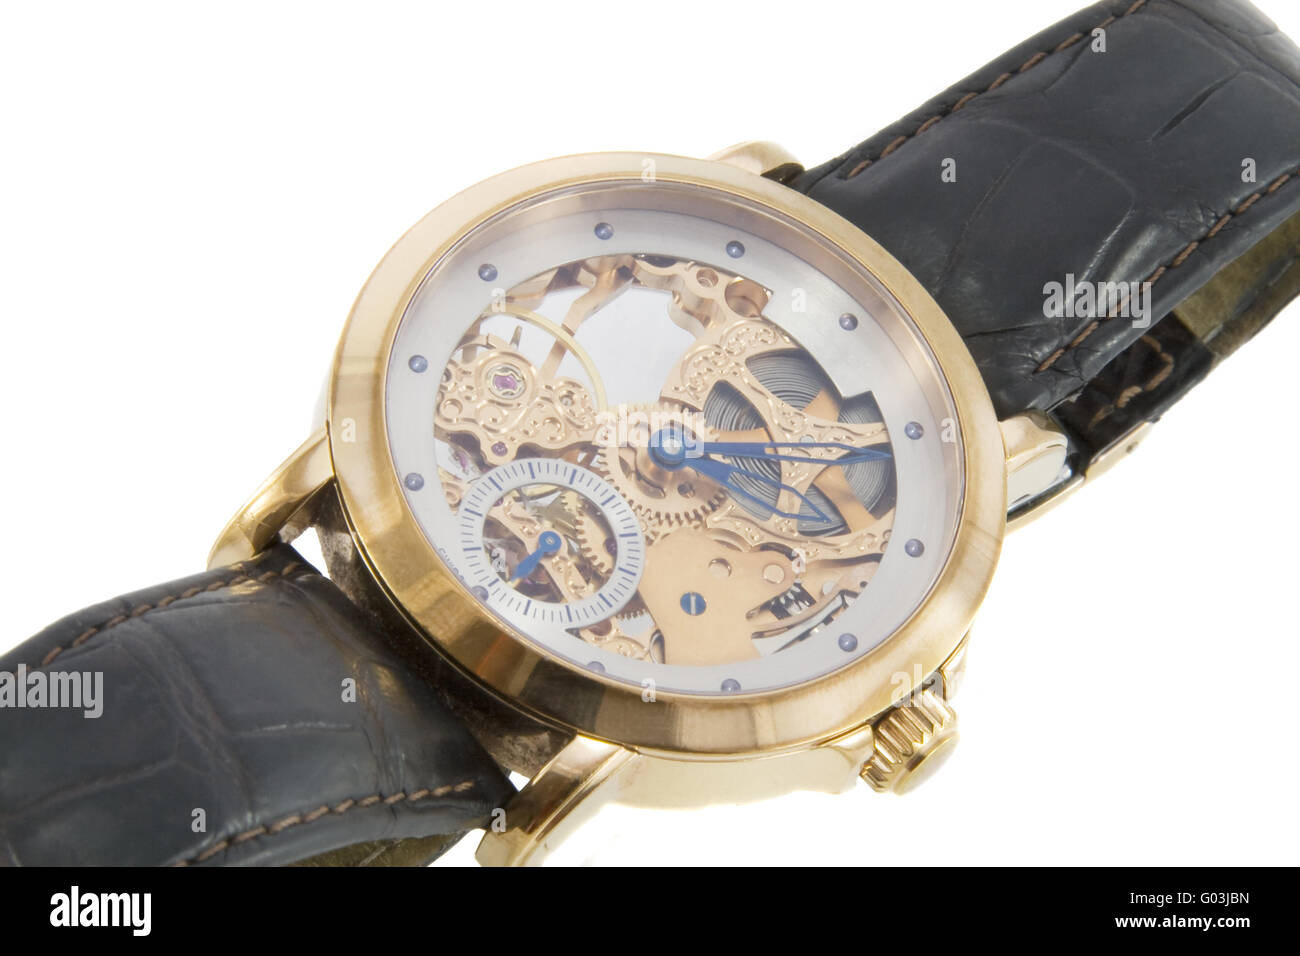 Rich gold swiss made chronograph watch in white background - Stock Image